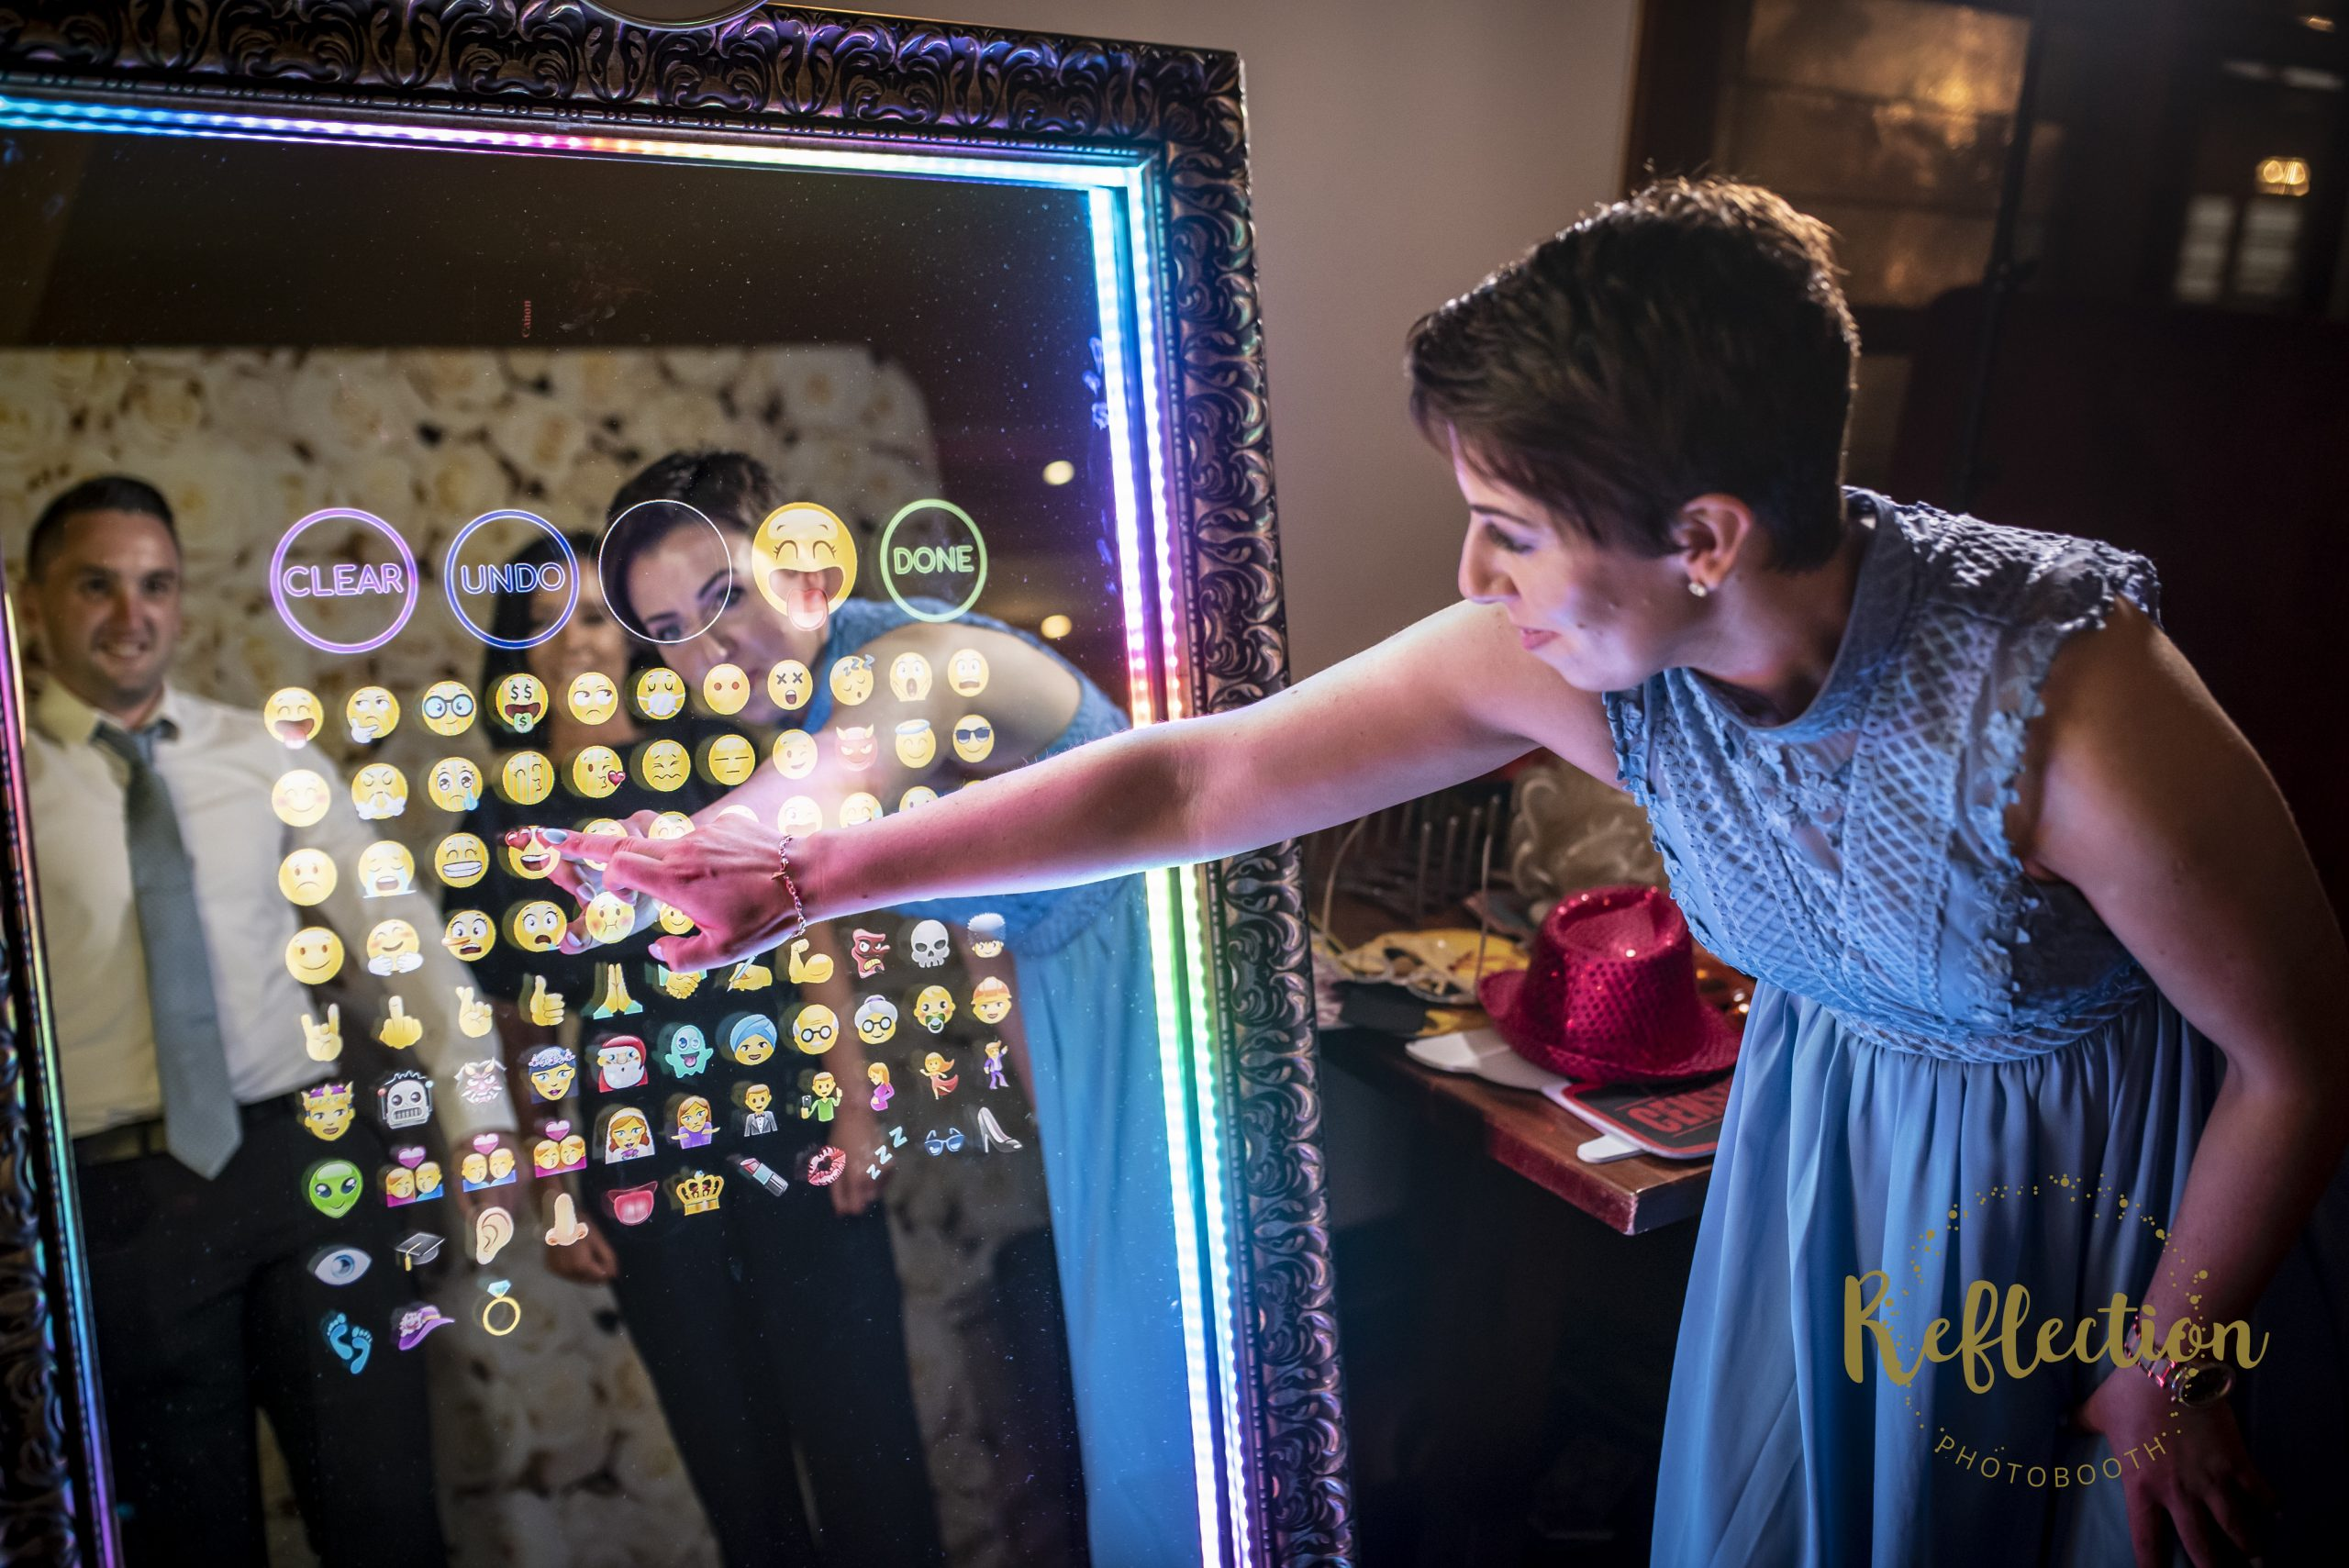 Mirror Photo Booth with guest signing the booth photos with emojis